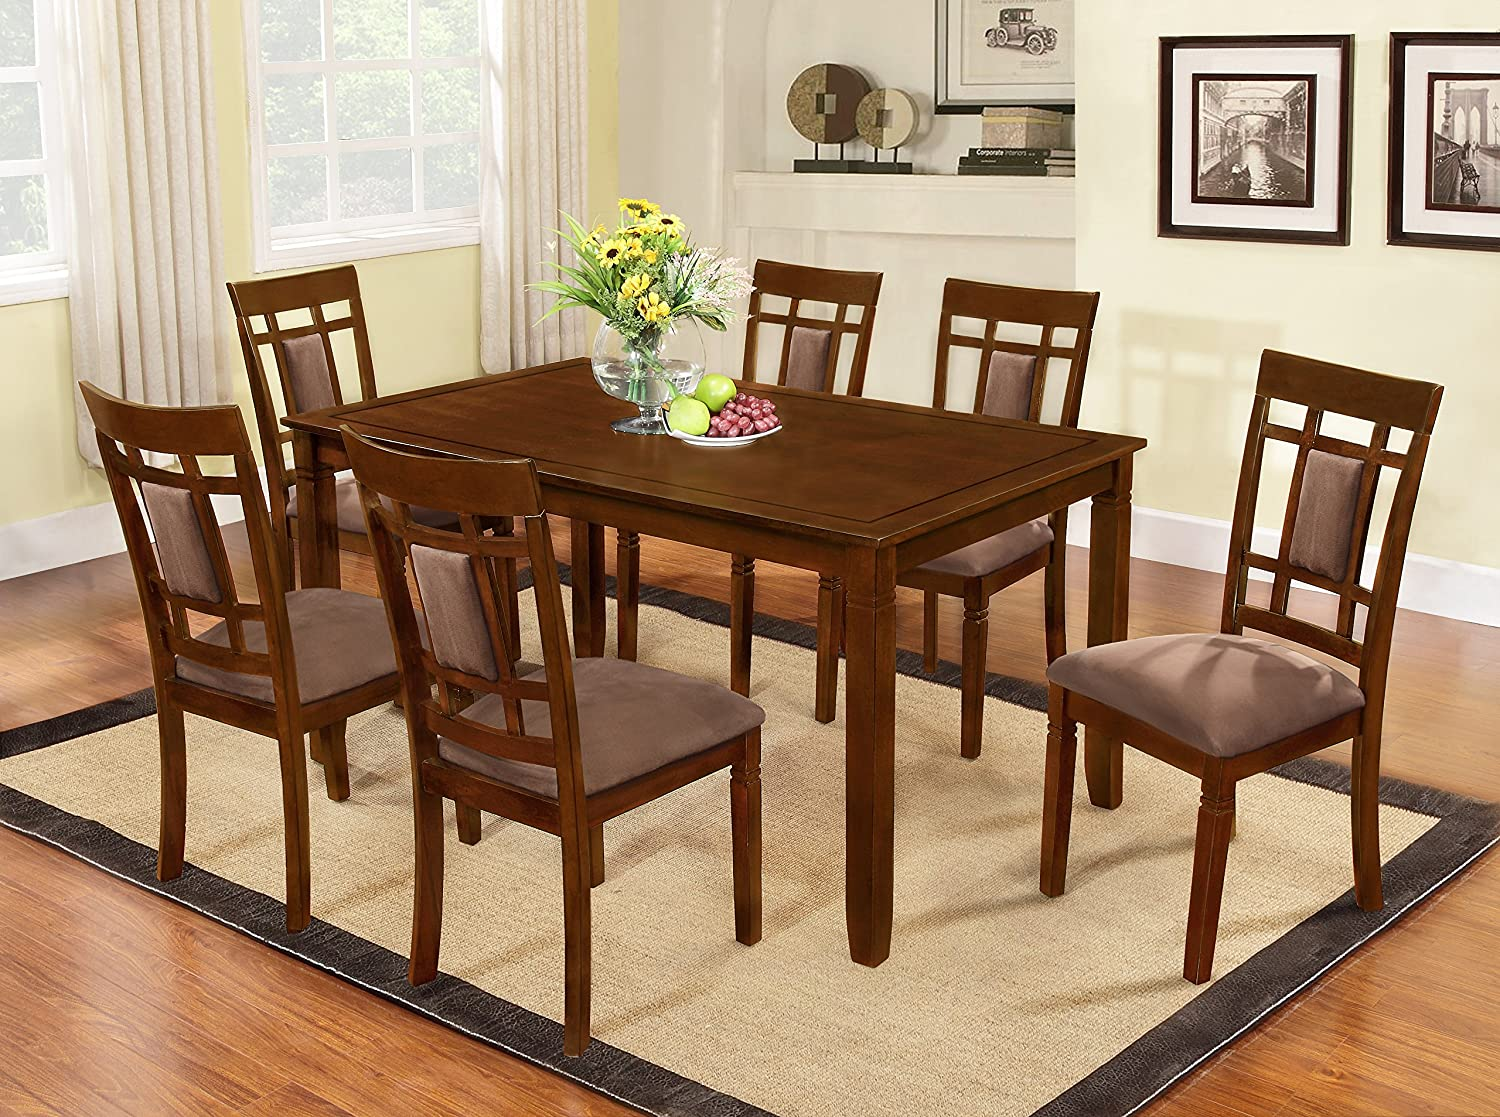 Charmant Amazon.com   The Room Style 7 Piece Cherry Finish Solid Wood Dining Table  Set   Table U0026 Chair Sets